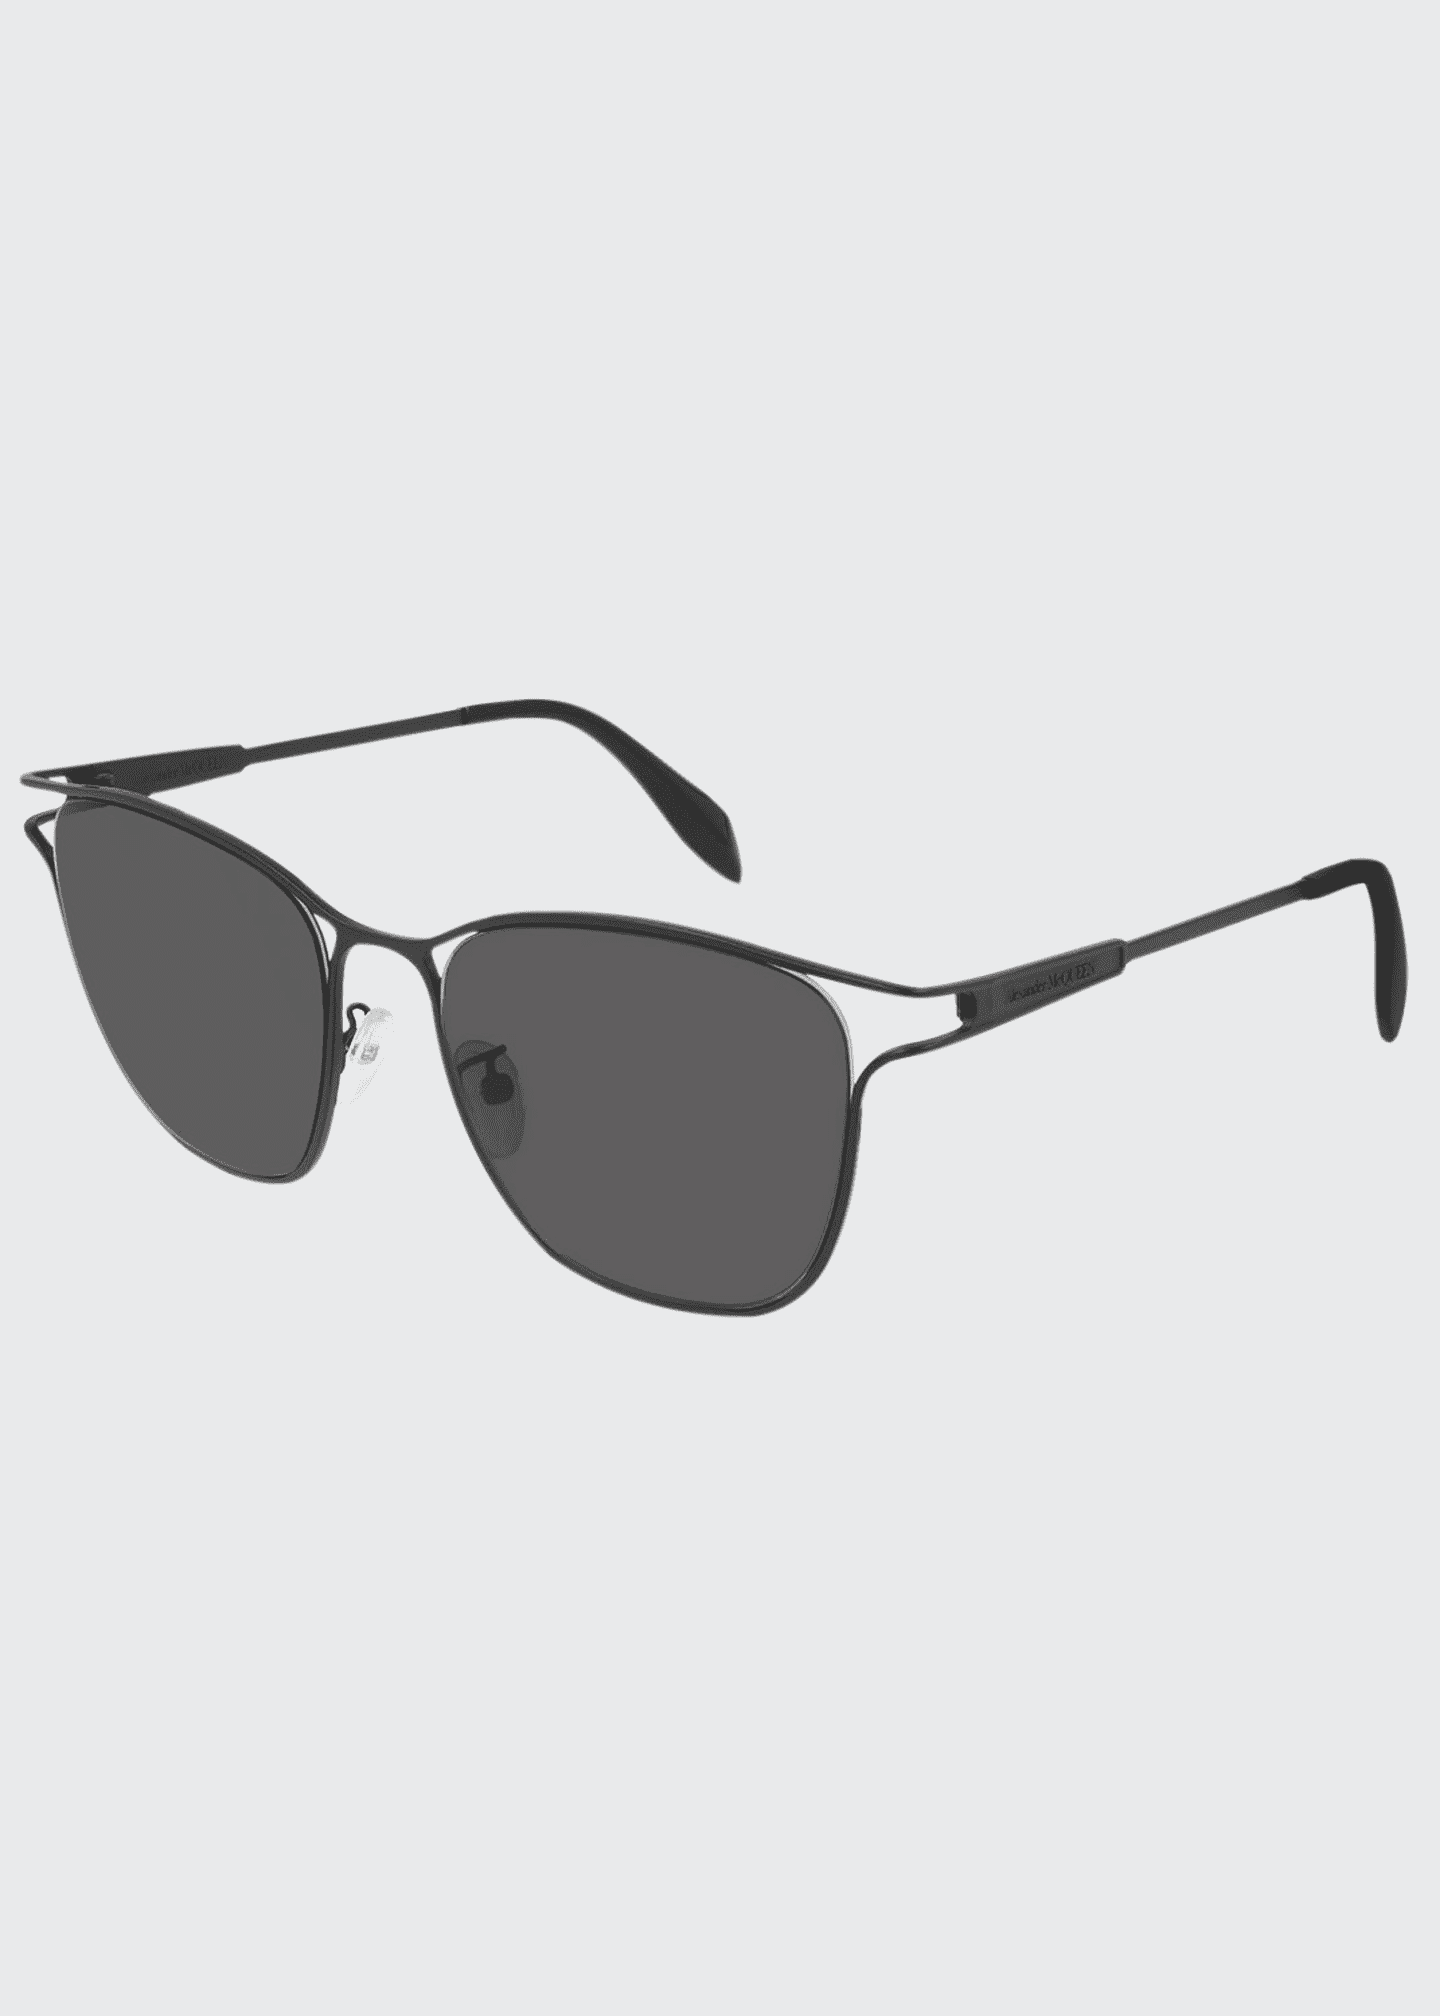 Alexander McQueen Square Metal Cutout Sunglasses